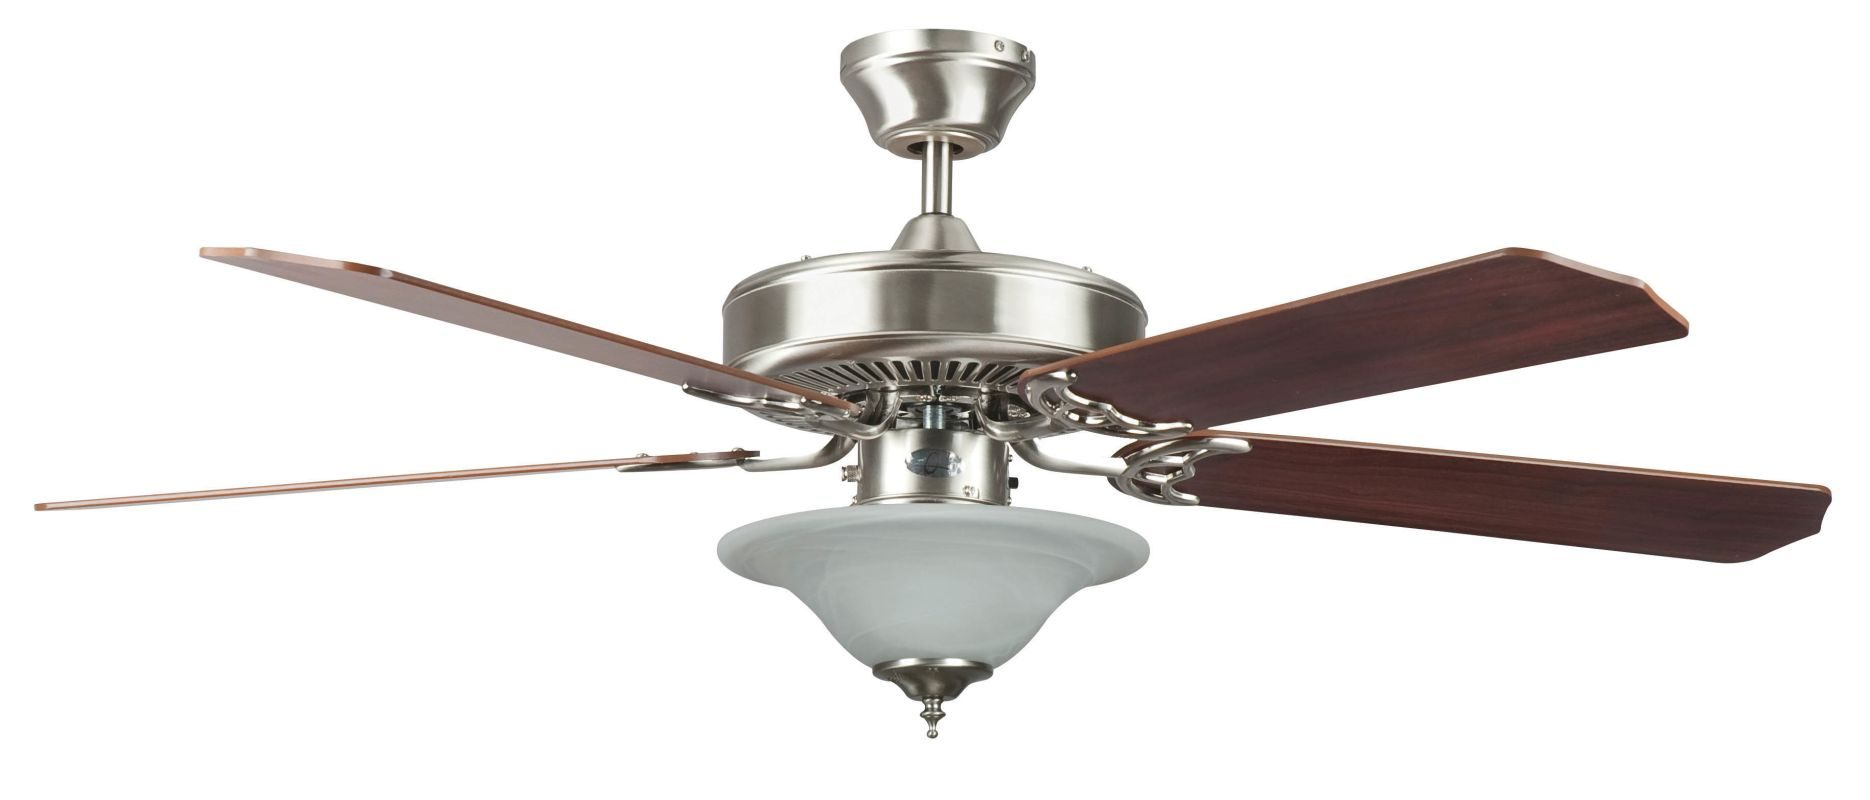 "Concord 52HES5E Heritage Square 52"" 5 Blade Indoor Ceiling Fan with"